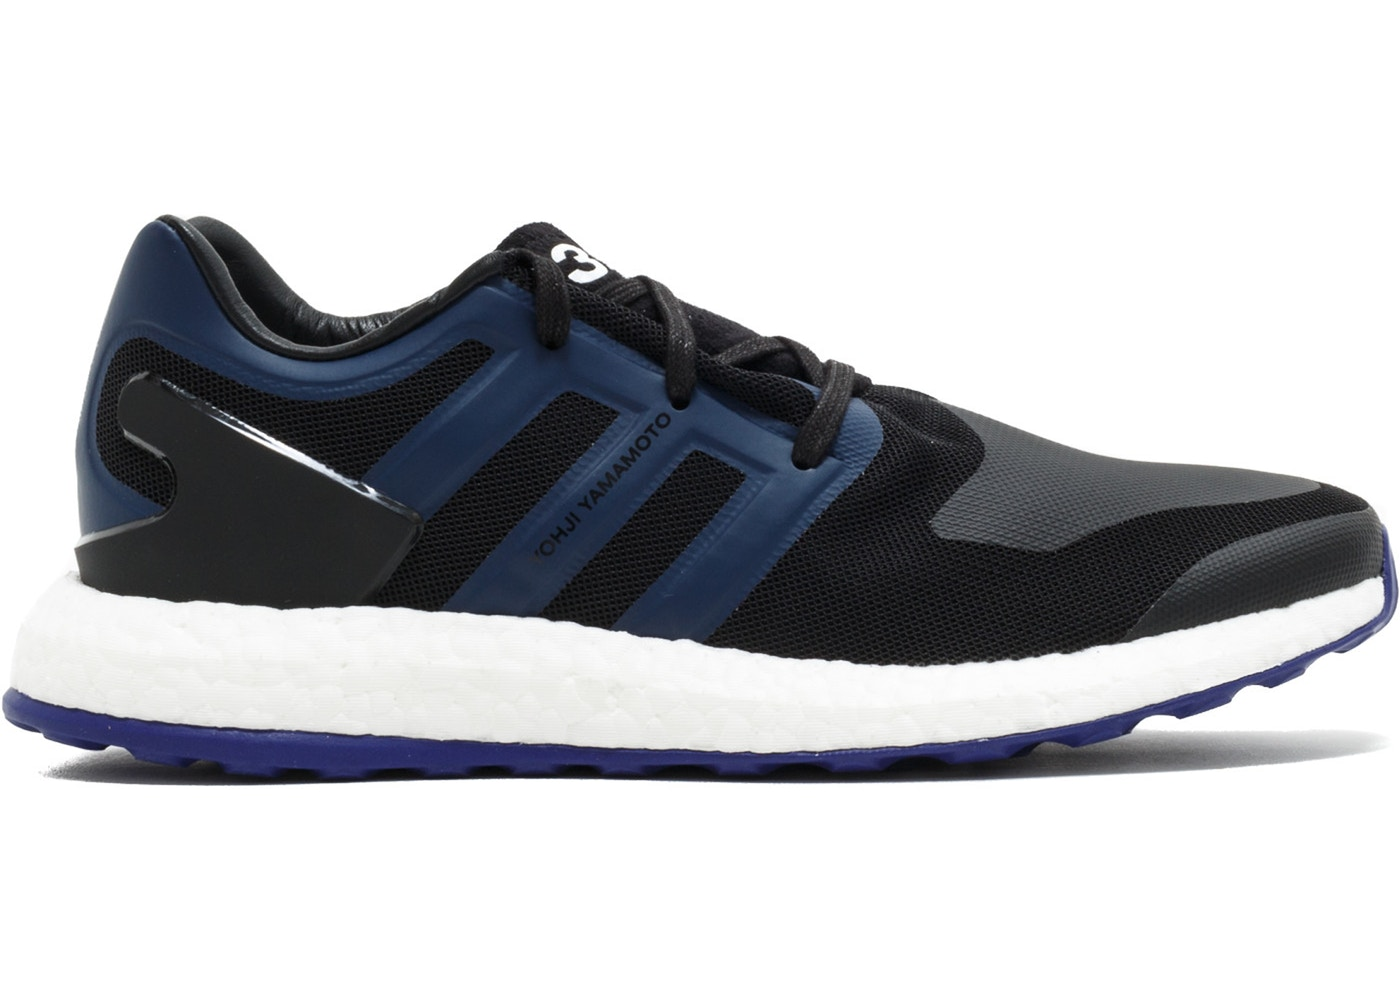 2a5078471c81b adidas Y-3 Pureboost Black Blue - BY8956